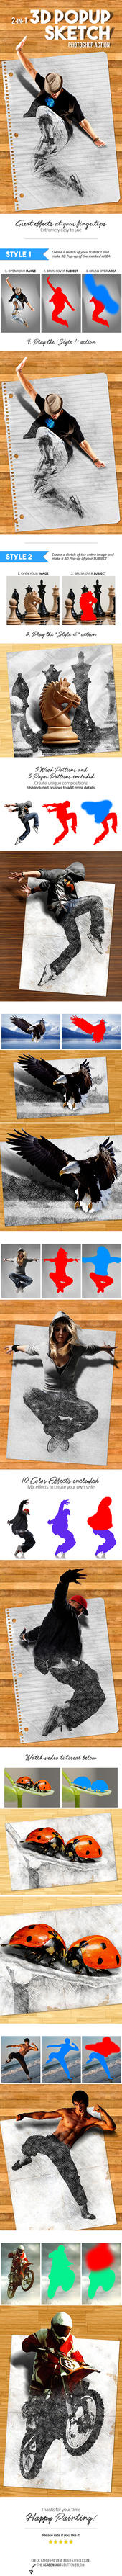 3D Popup Sketch Photoshop Action by Kluzya